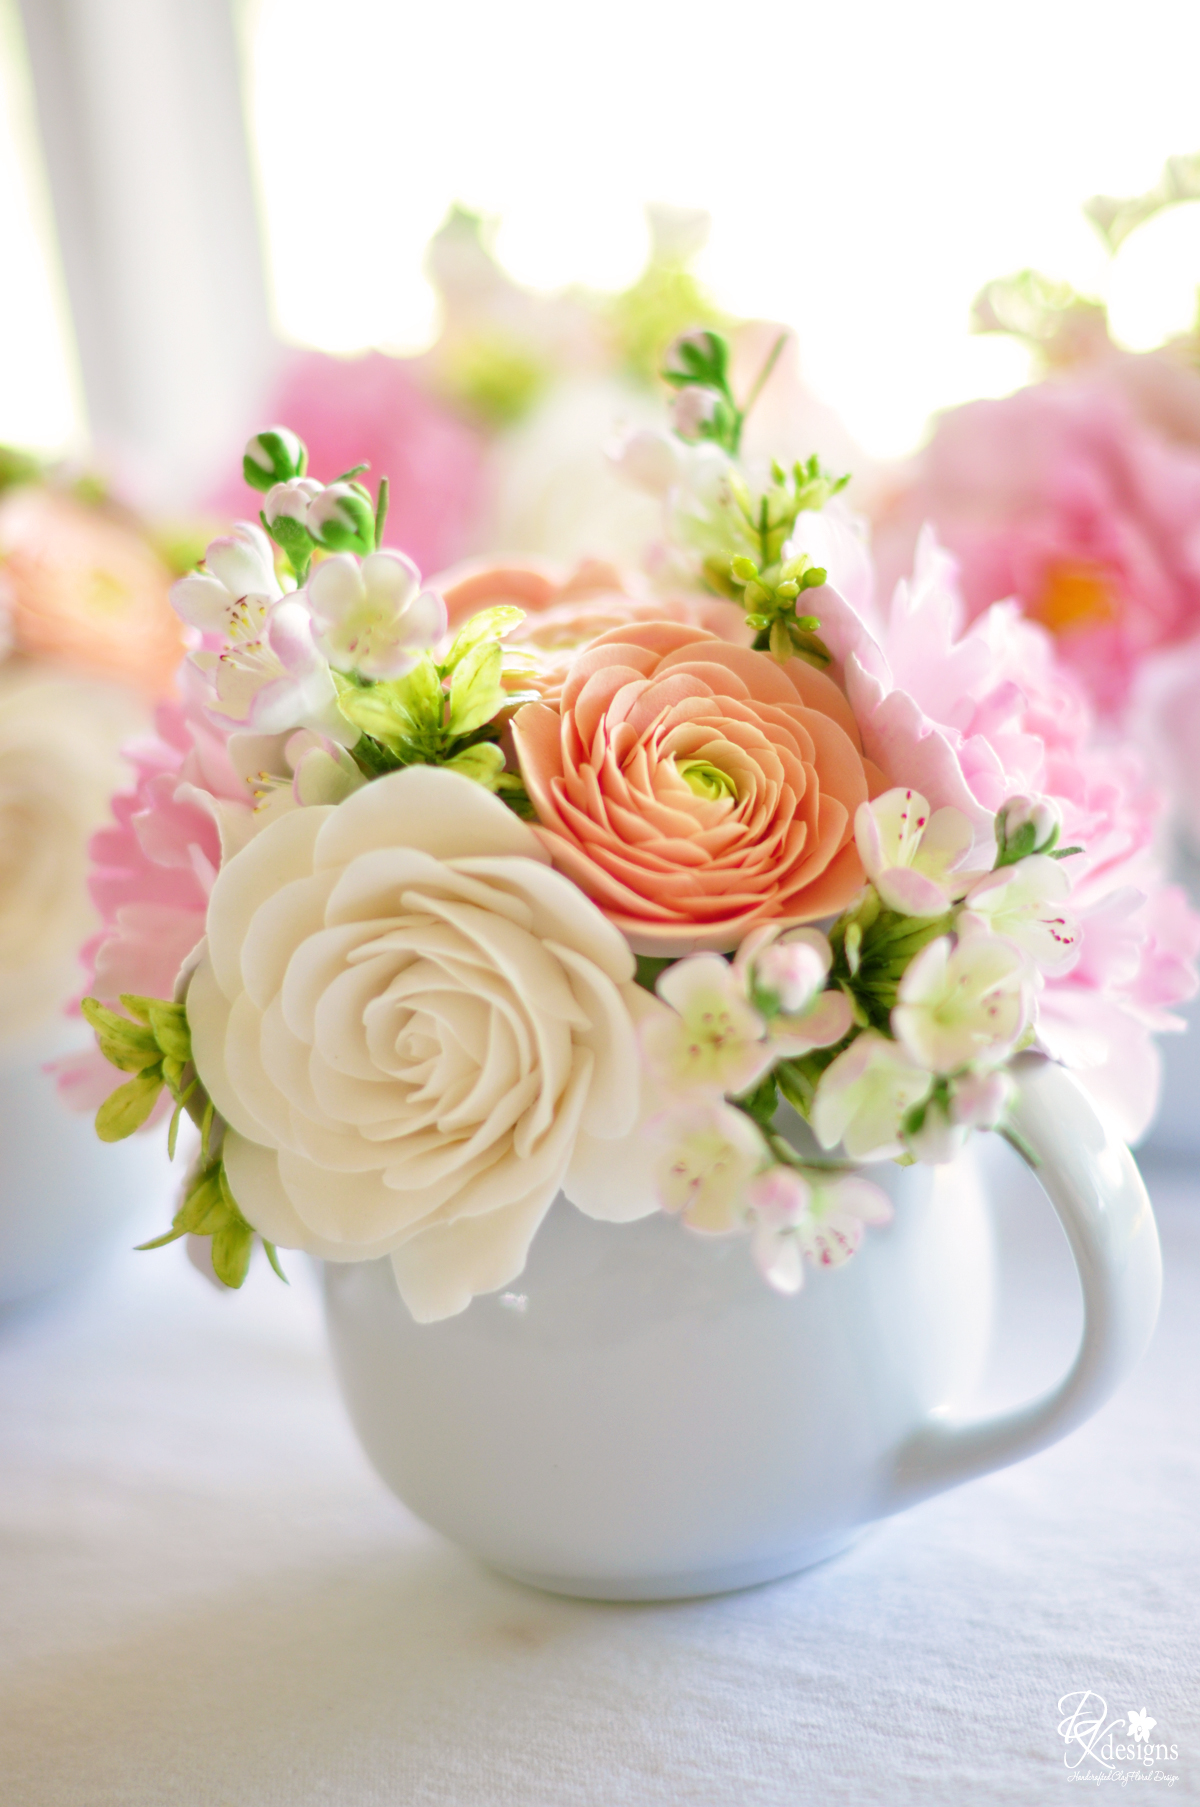 Floral décor for your tea party